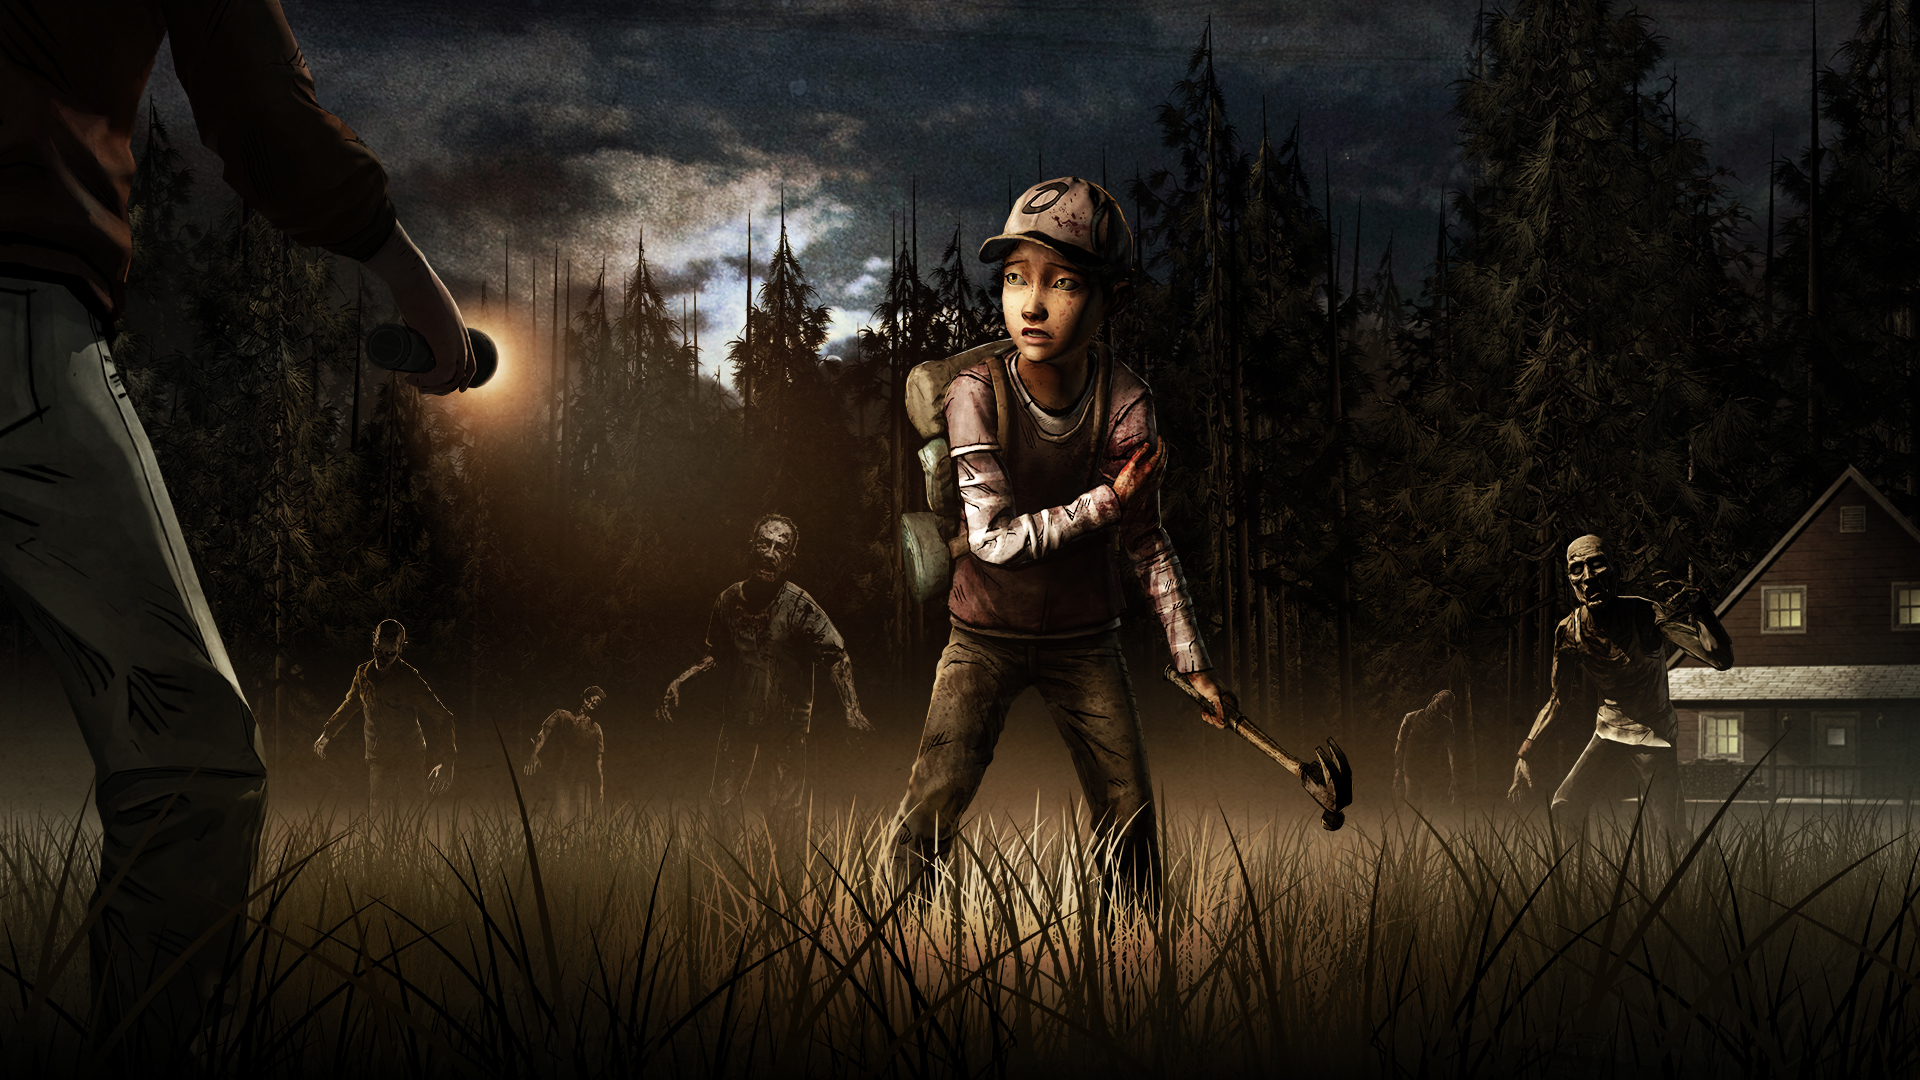 The Walking Dead Season 2 Wallpaper